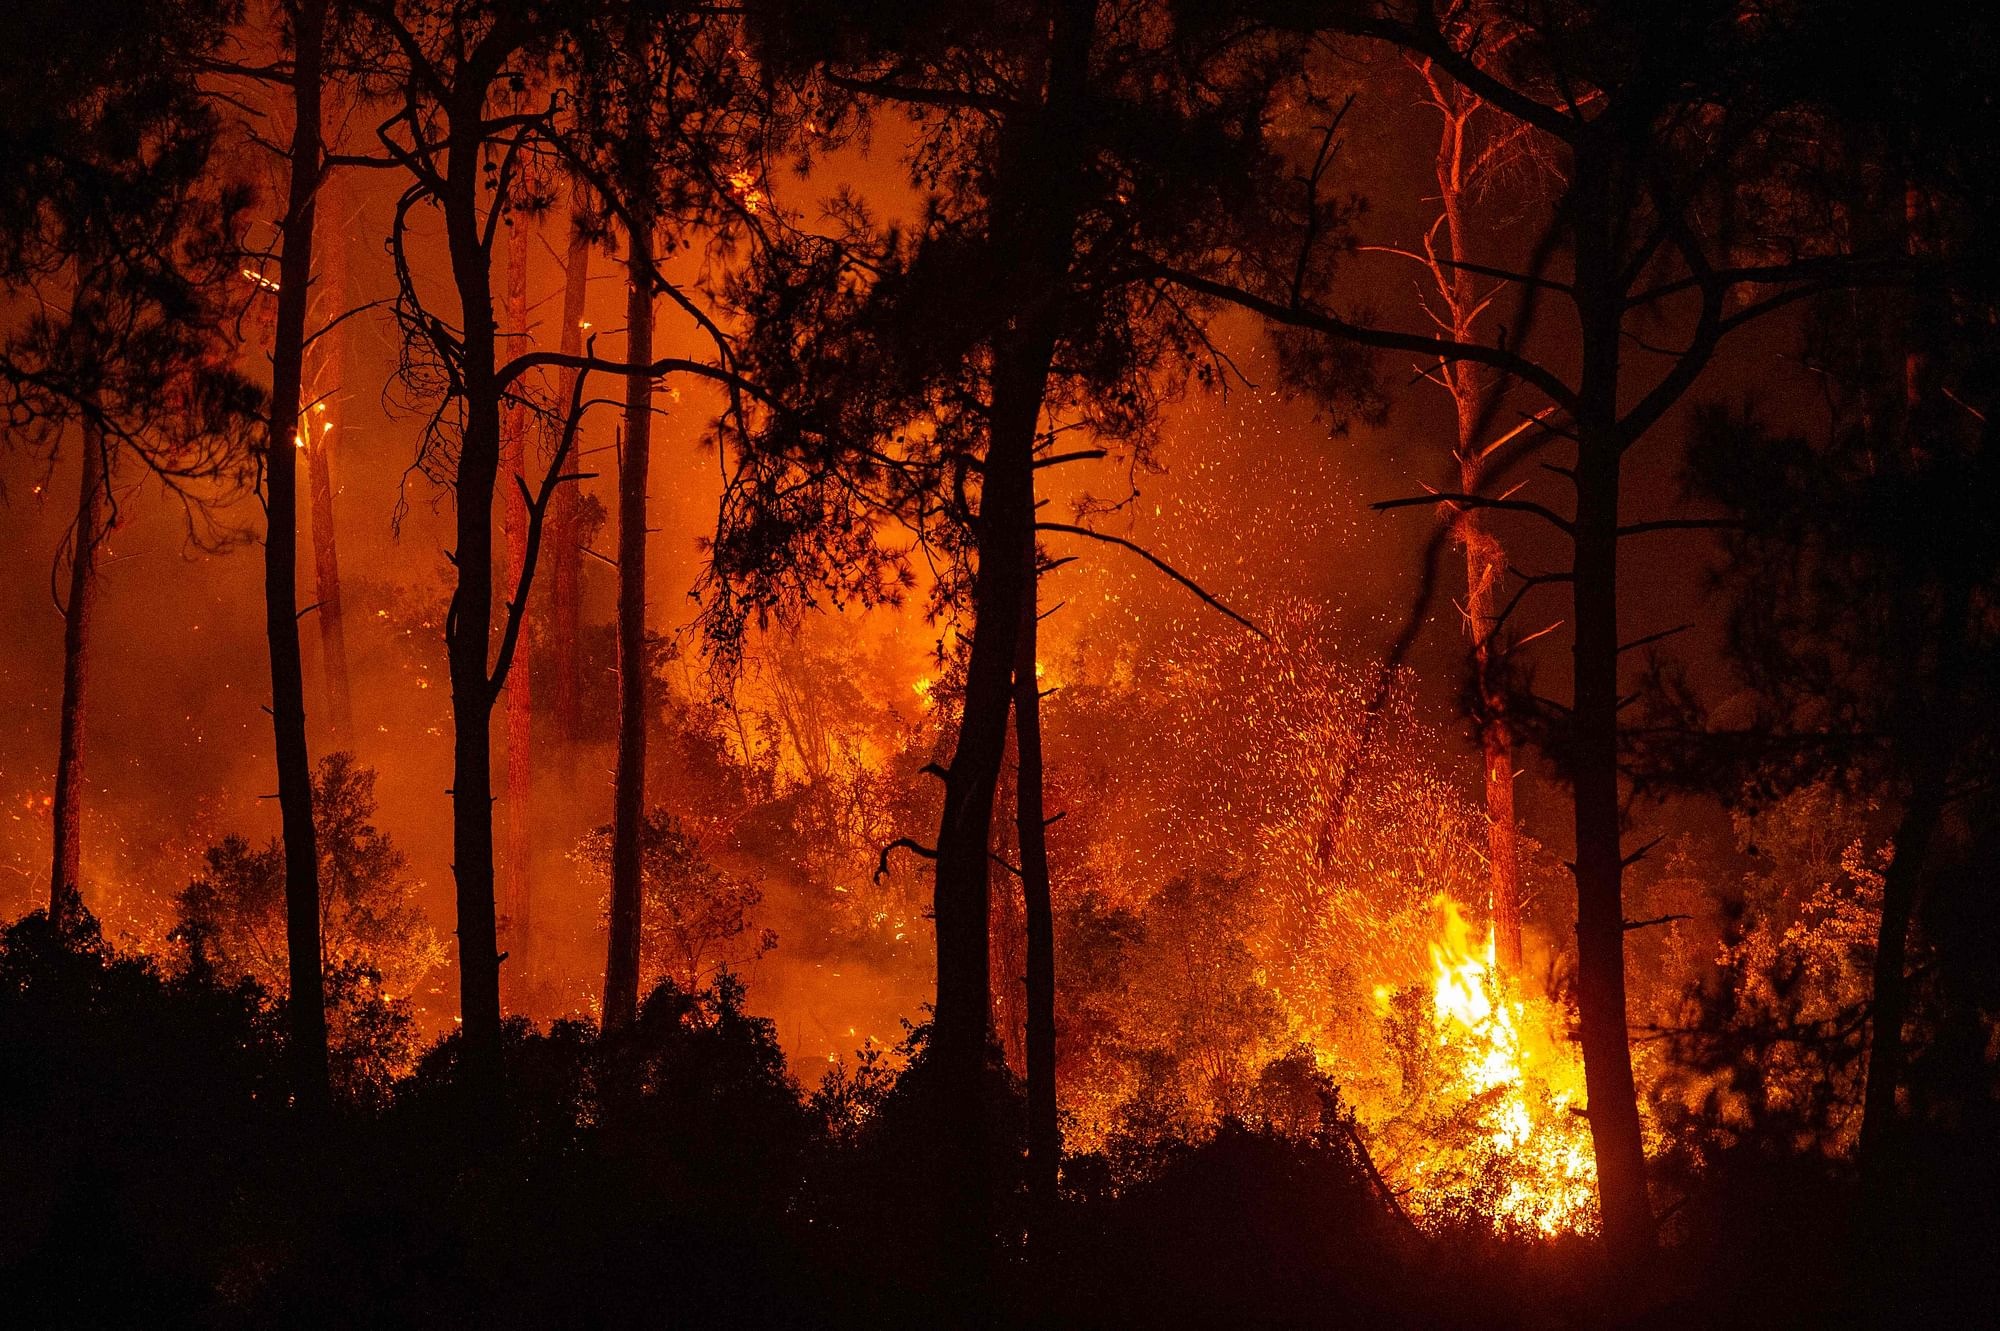 Turkey battles wildfires for 6th day, EU to send planes